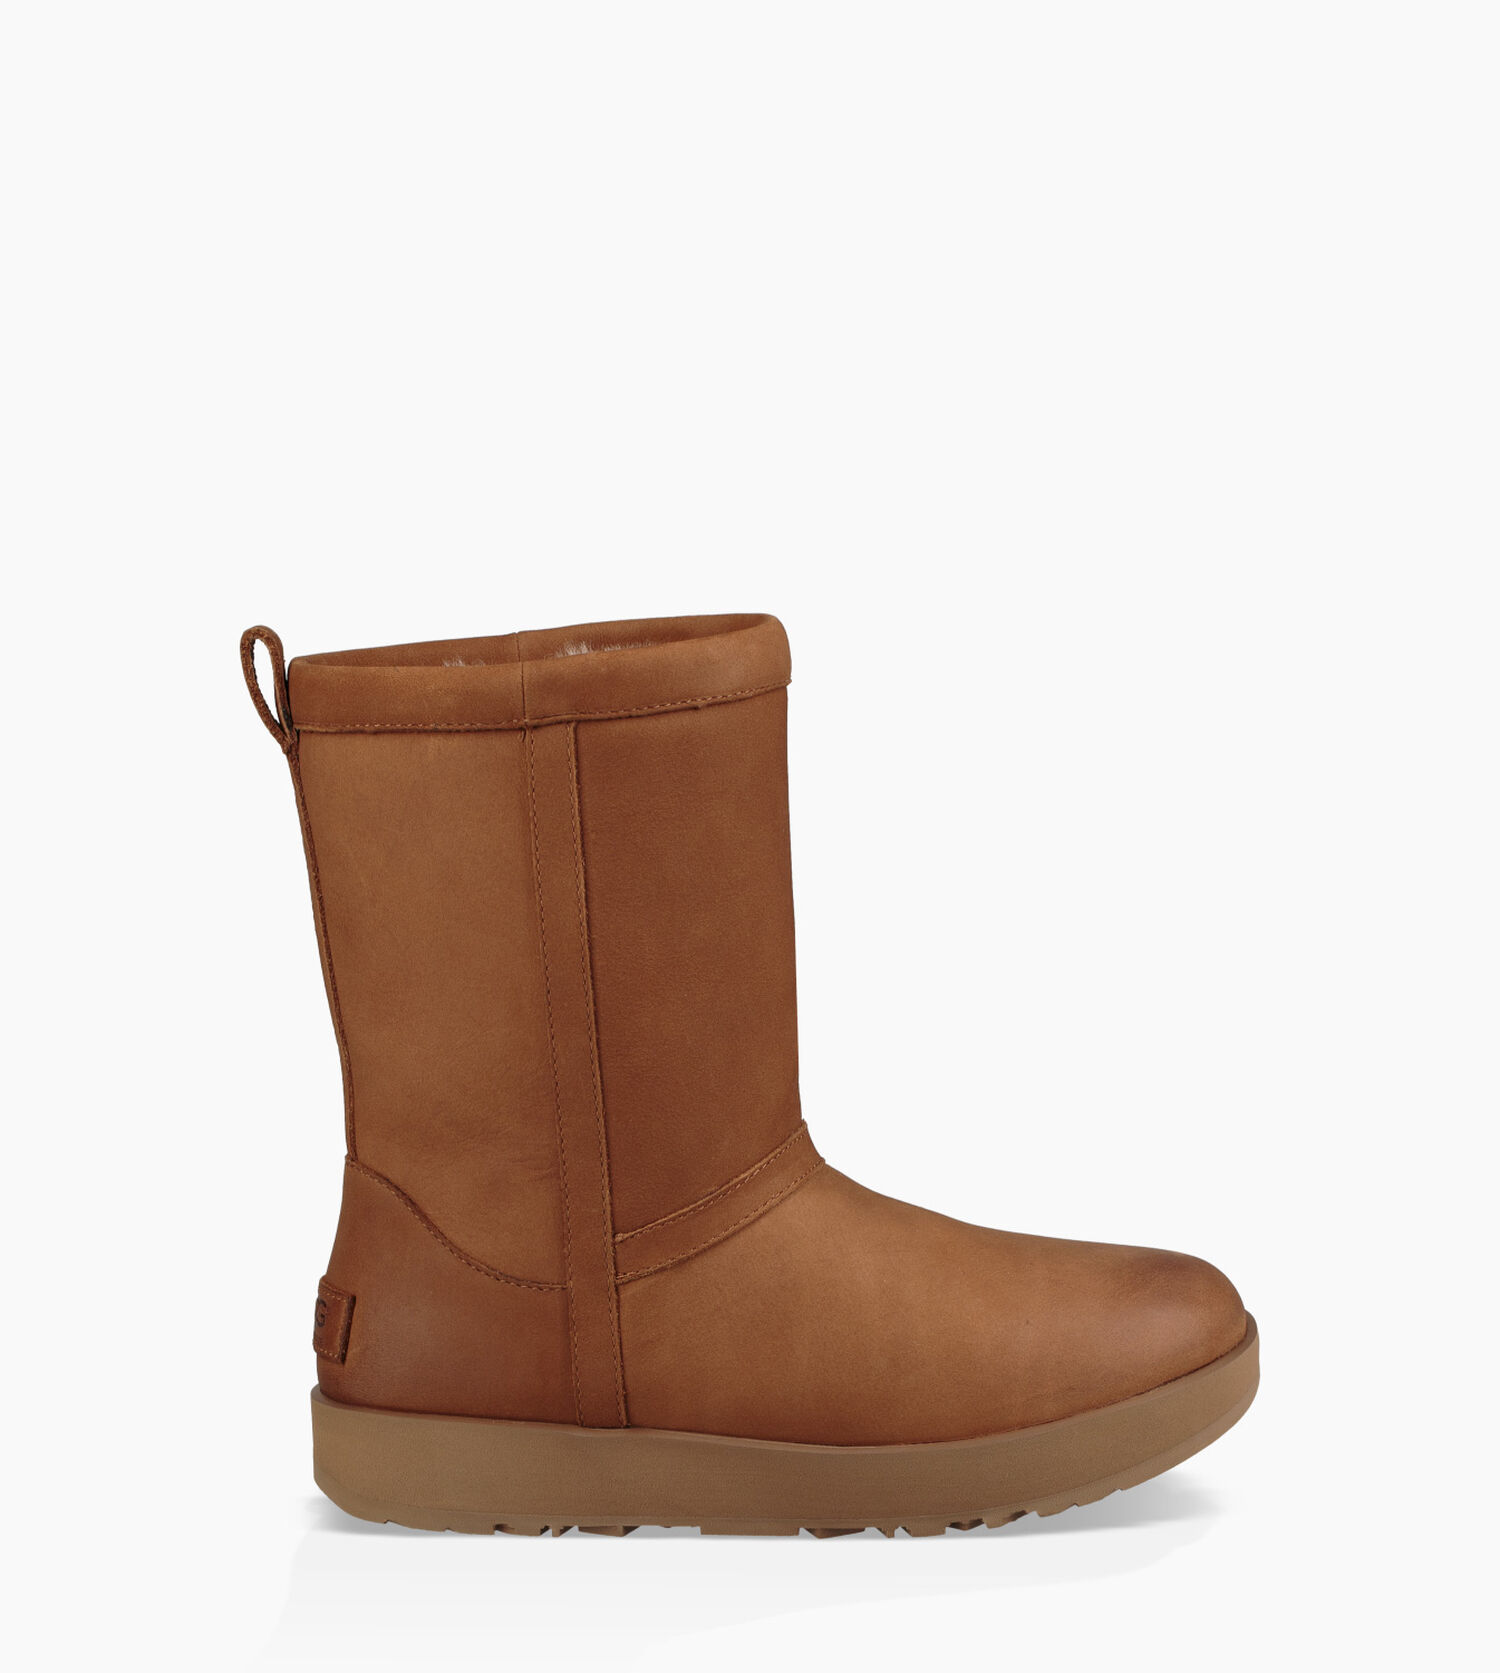 8d93c14b75b Women's All-Weather Boots: Snow & Rain Boots for Women | UGG® Official